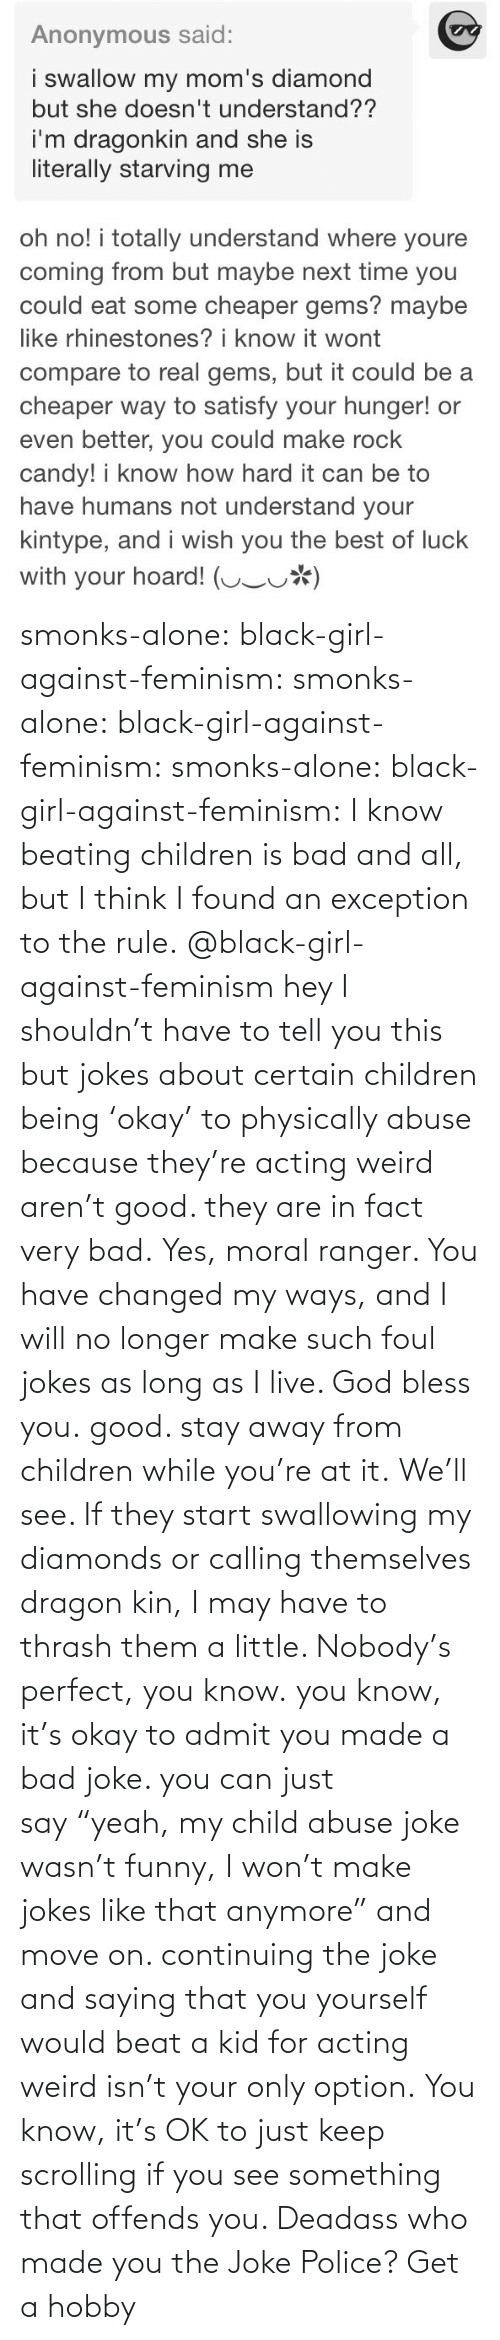 "Rule: smonks-alone:  black-girl-against-feminism: smonks-alone:  black-girl-against-feminism:  smonks-alone:  black-girl-against-feminism: I know beating children is bad and all, but I think I found an exception to the rule. @black-girl-against-feminism hey I shouldn't have to tell you this but jokes about certain children being 'okay' to physically abuse because they're acting weird aren't good. they are in fact very bad.  Yes, moral ranger. You have changed my ways, and I will no longer make such foul jokes as long as I live. God bless you.  good. stay away from children while you're at it.  We'll see. If they start swallowing my diamonds or calling themselves dragon kin, I may have to thrash them a little. Nobody's perfect, you know.  you know, it's okay to admit you made a bad joke. you can just say ""yeah, my child abuse joke wasn't funny, I won't make jokes like that anymore"" and move on. continuing the joke and saying that you yourself would beat a kid for acting weird isn't your only option.   You know, it's OK to just keep scrolling if you see something that offends you. Deadass who made you the Joke Police? Get a hobby"